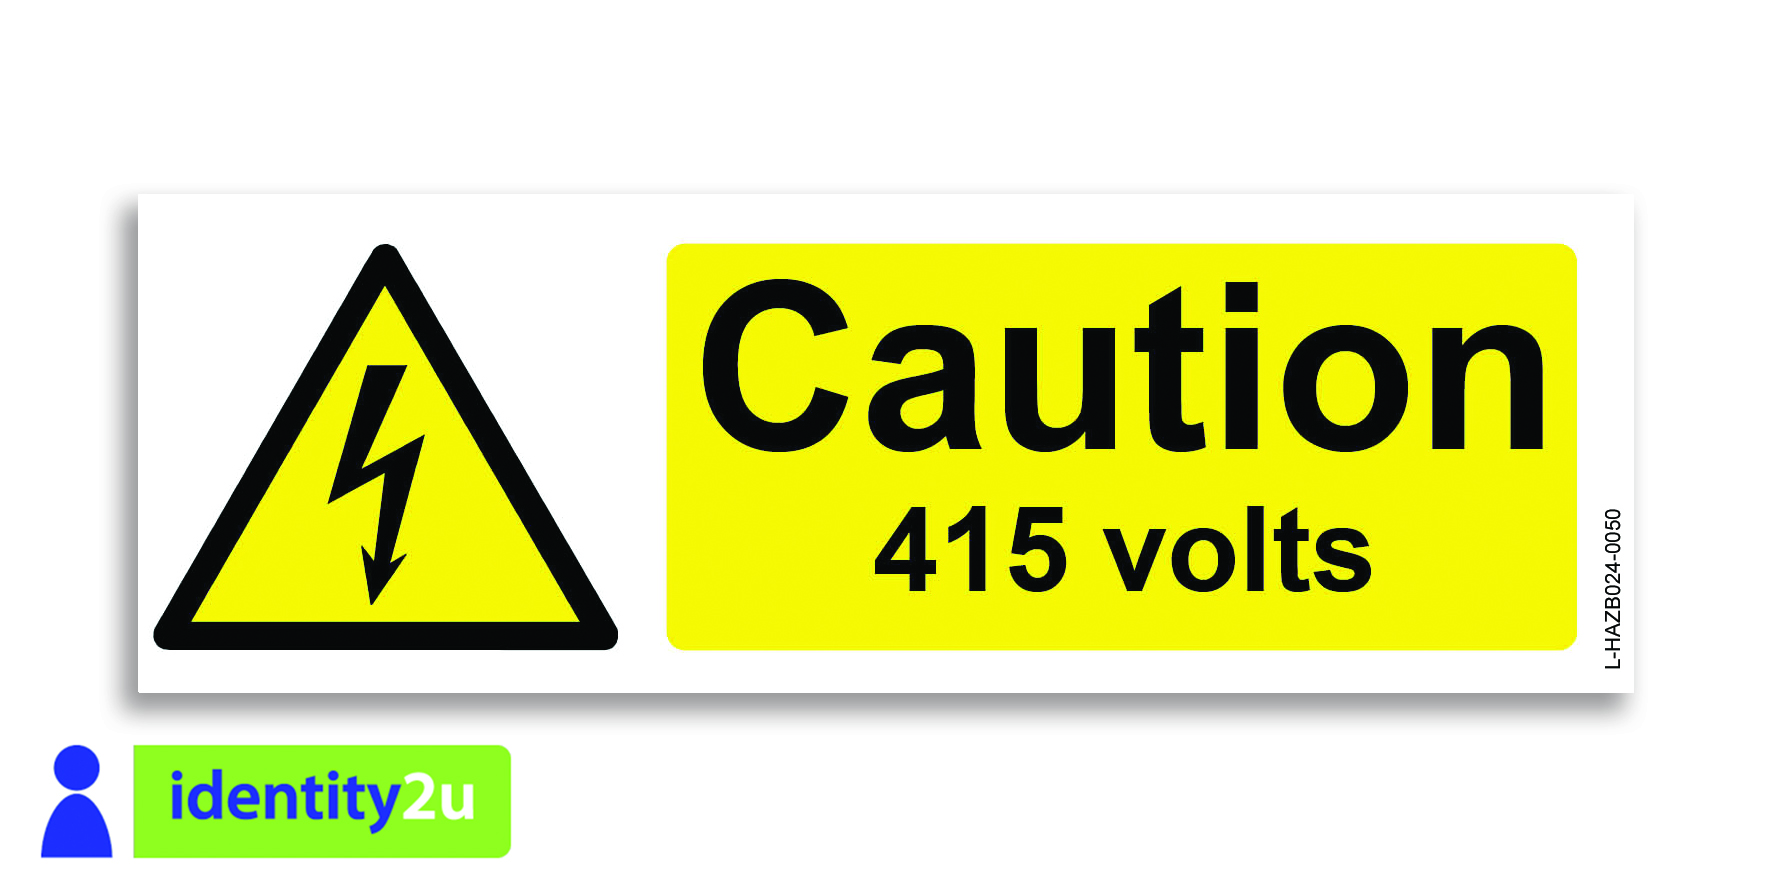 Caution 415 volts 50 Image